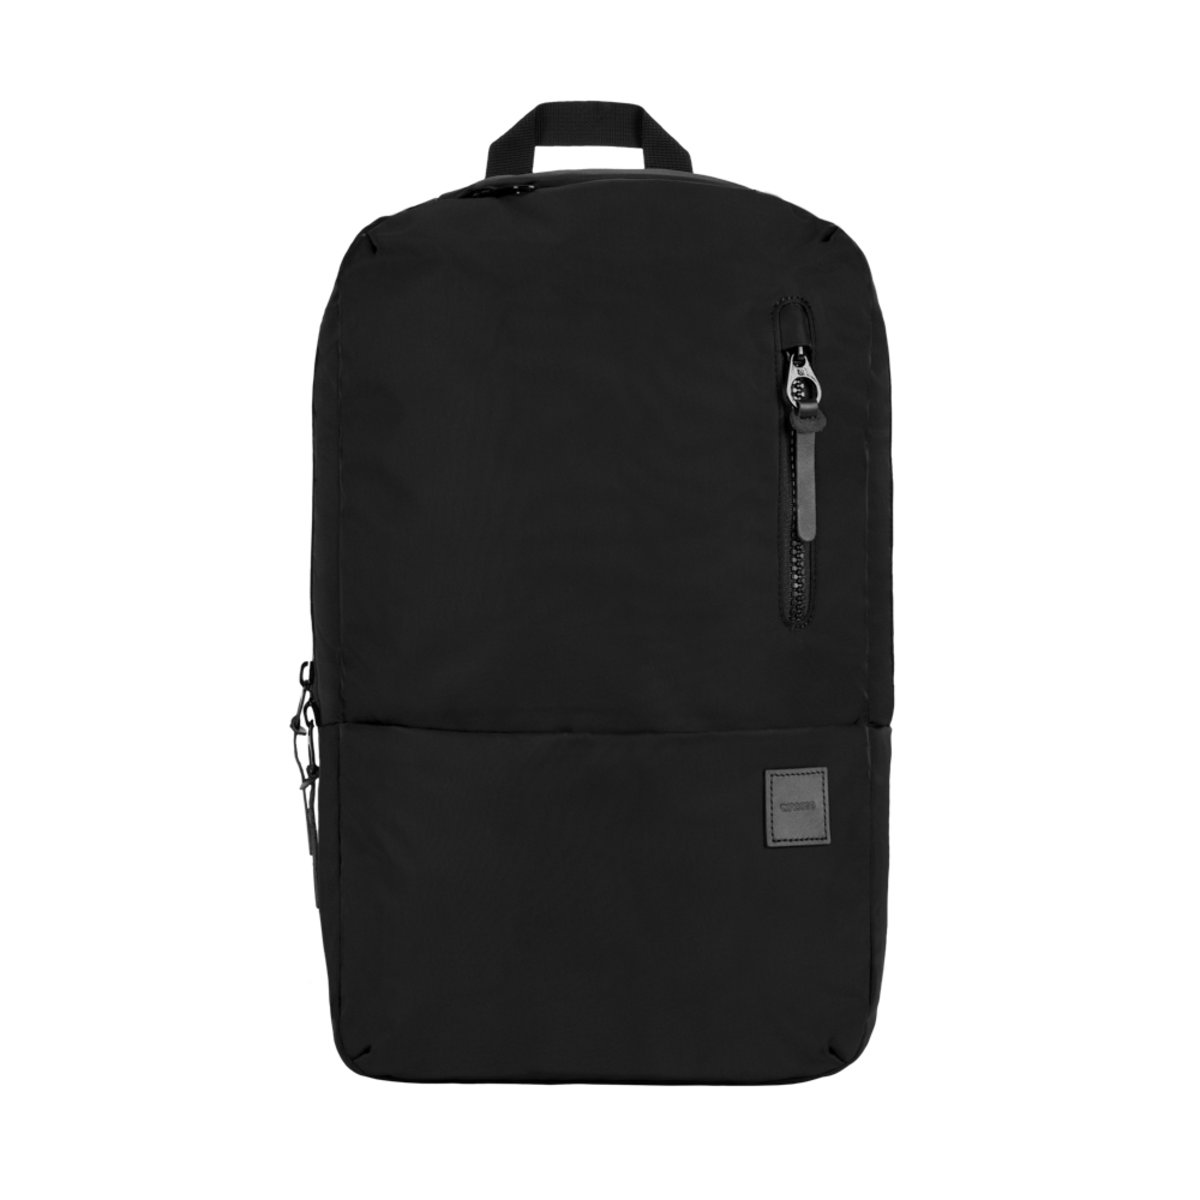 "Compass 15"" Backpack w/Flight Nylon - Black"